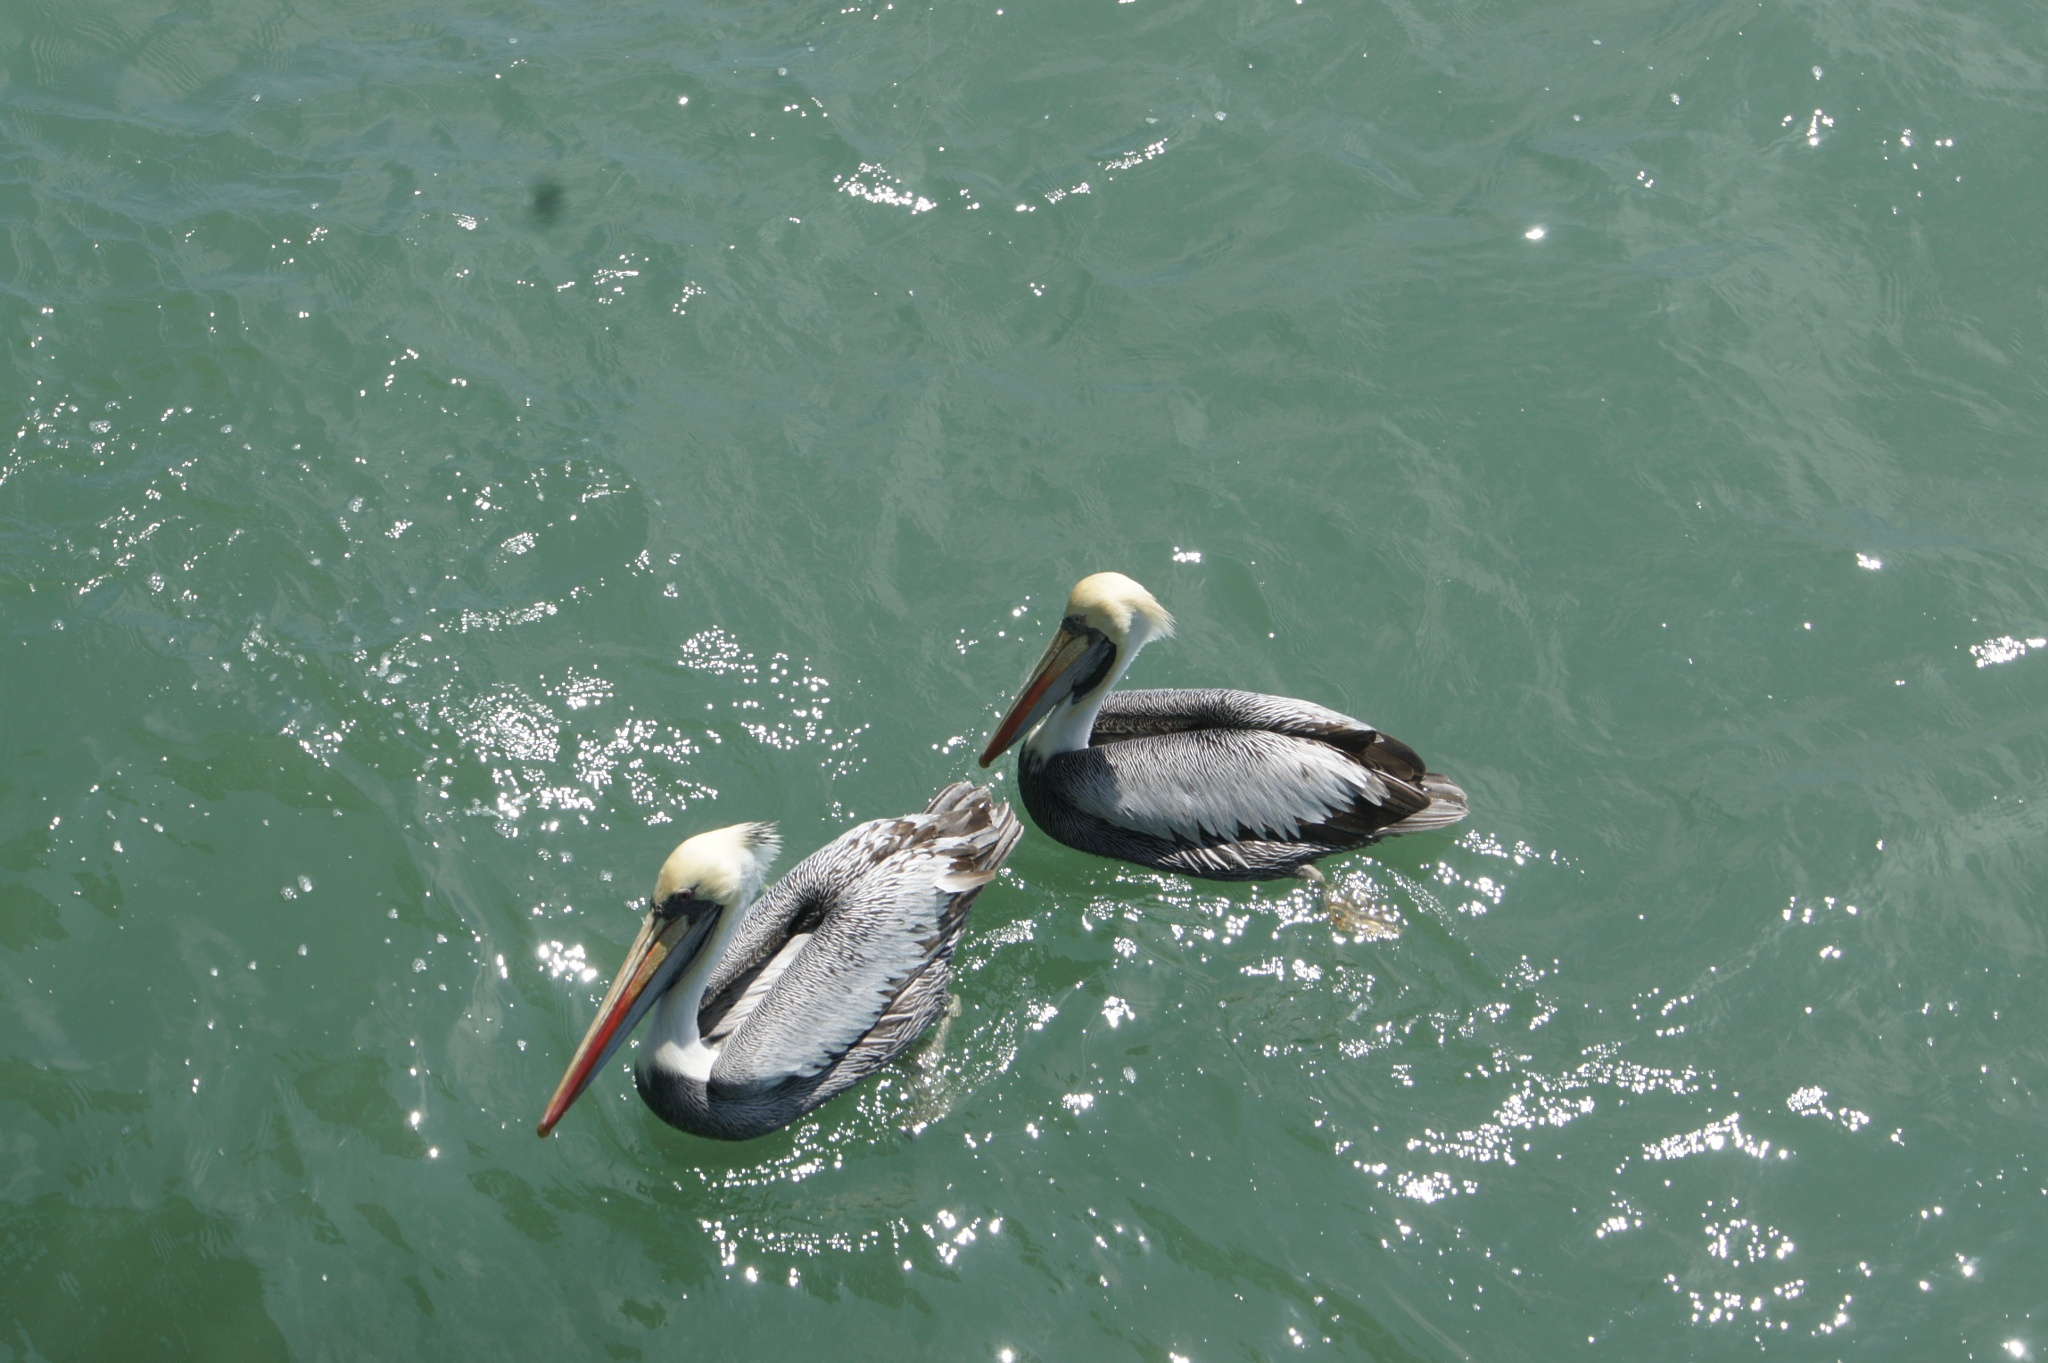 Pacific Ocean Pelicans by RodhyPhotography